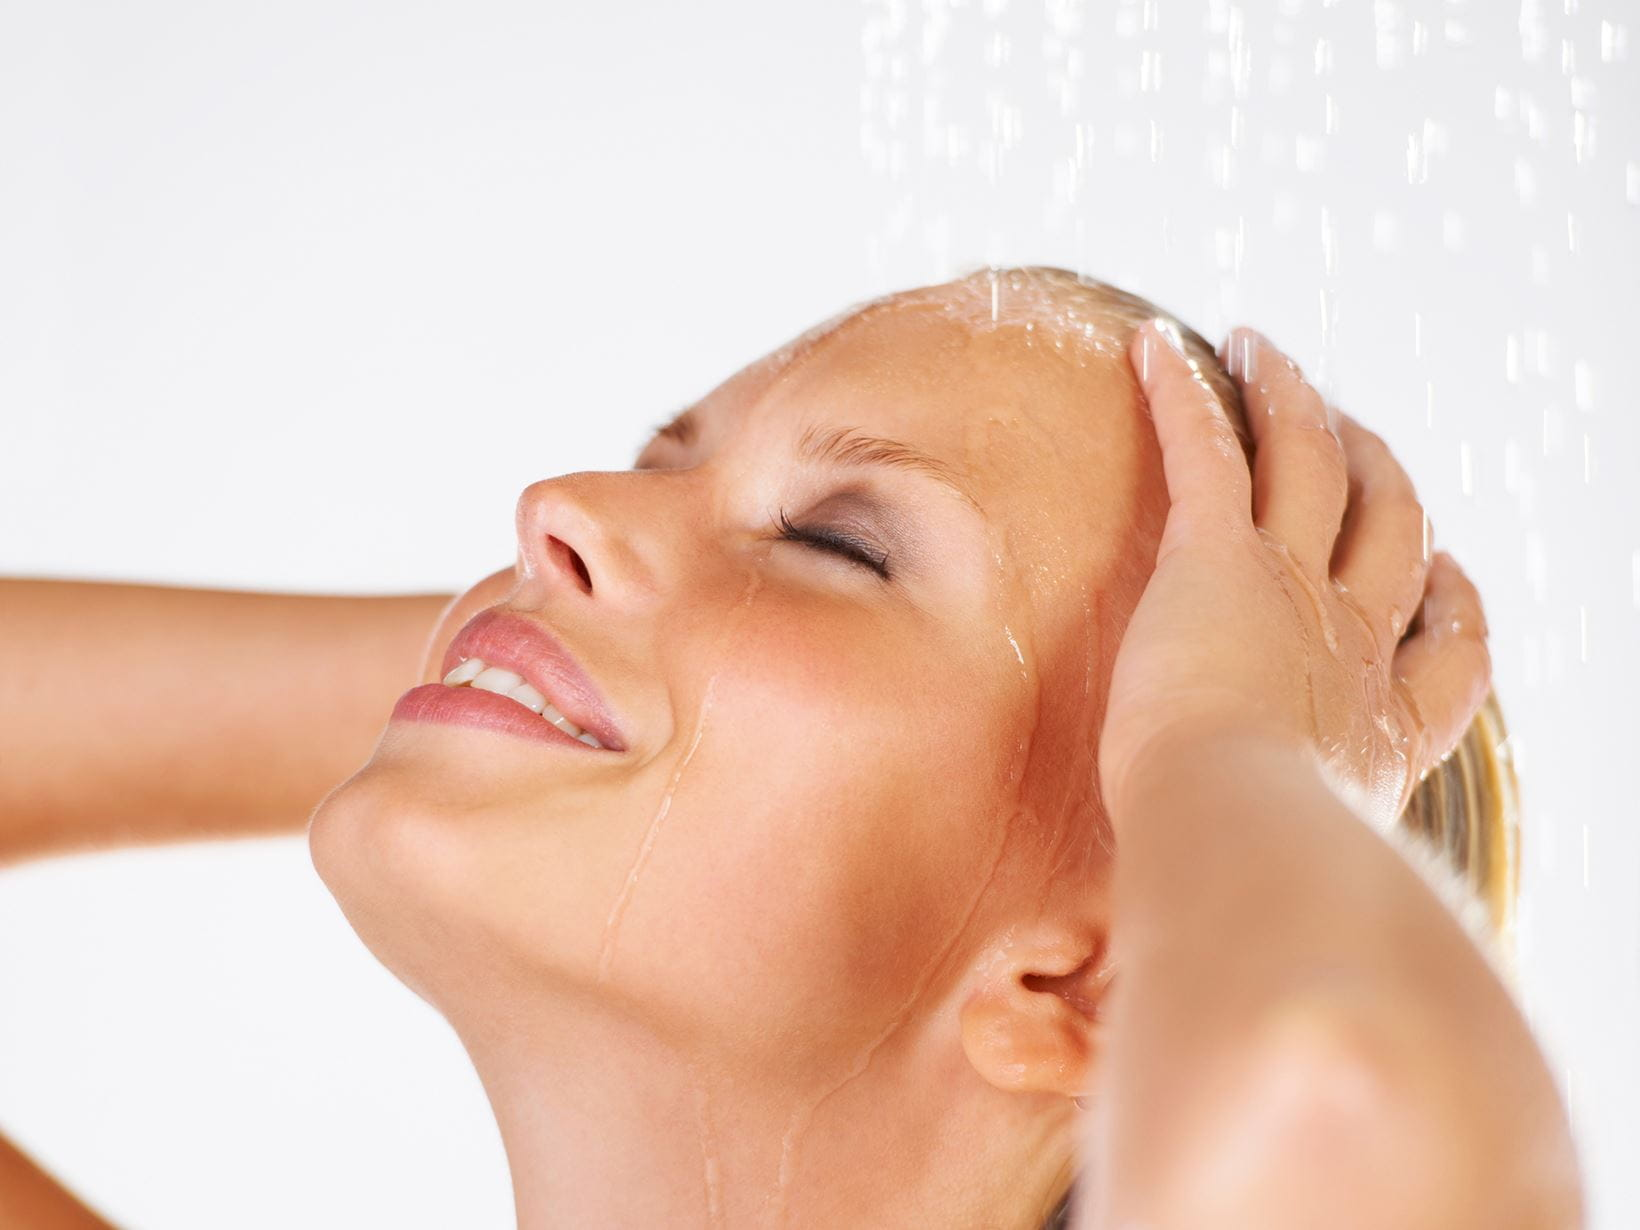 lady learning how to shower properly